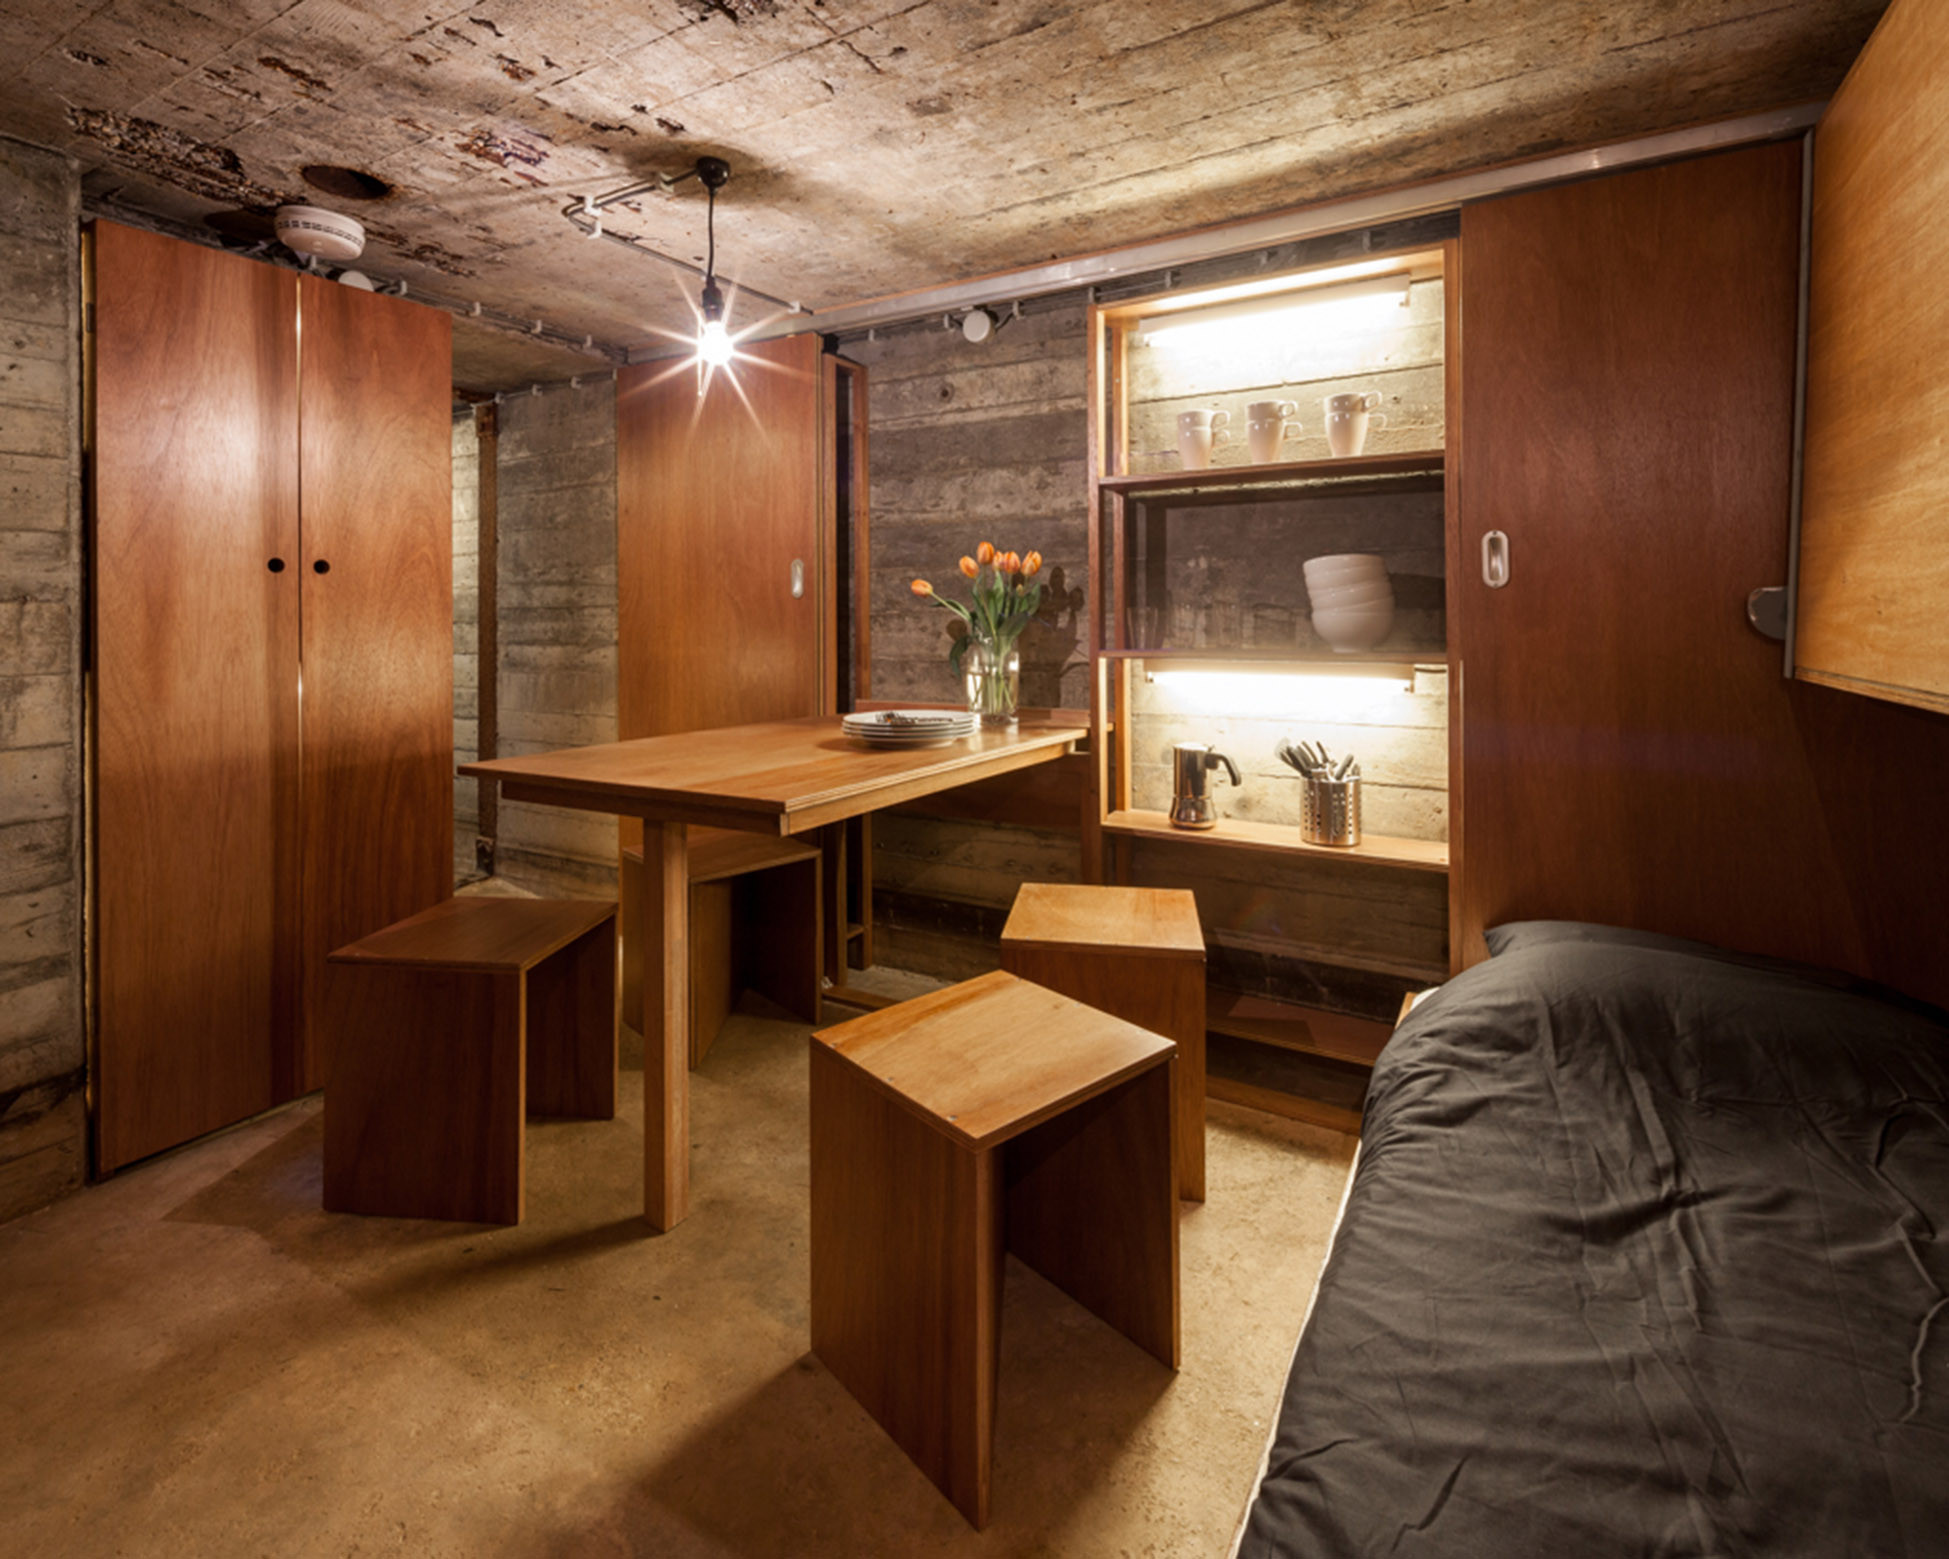 War Bunker Refurbishment / B-ILD | ArchDaily